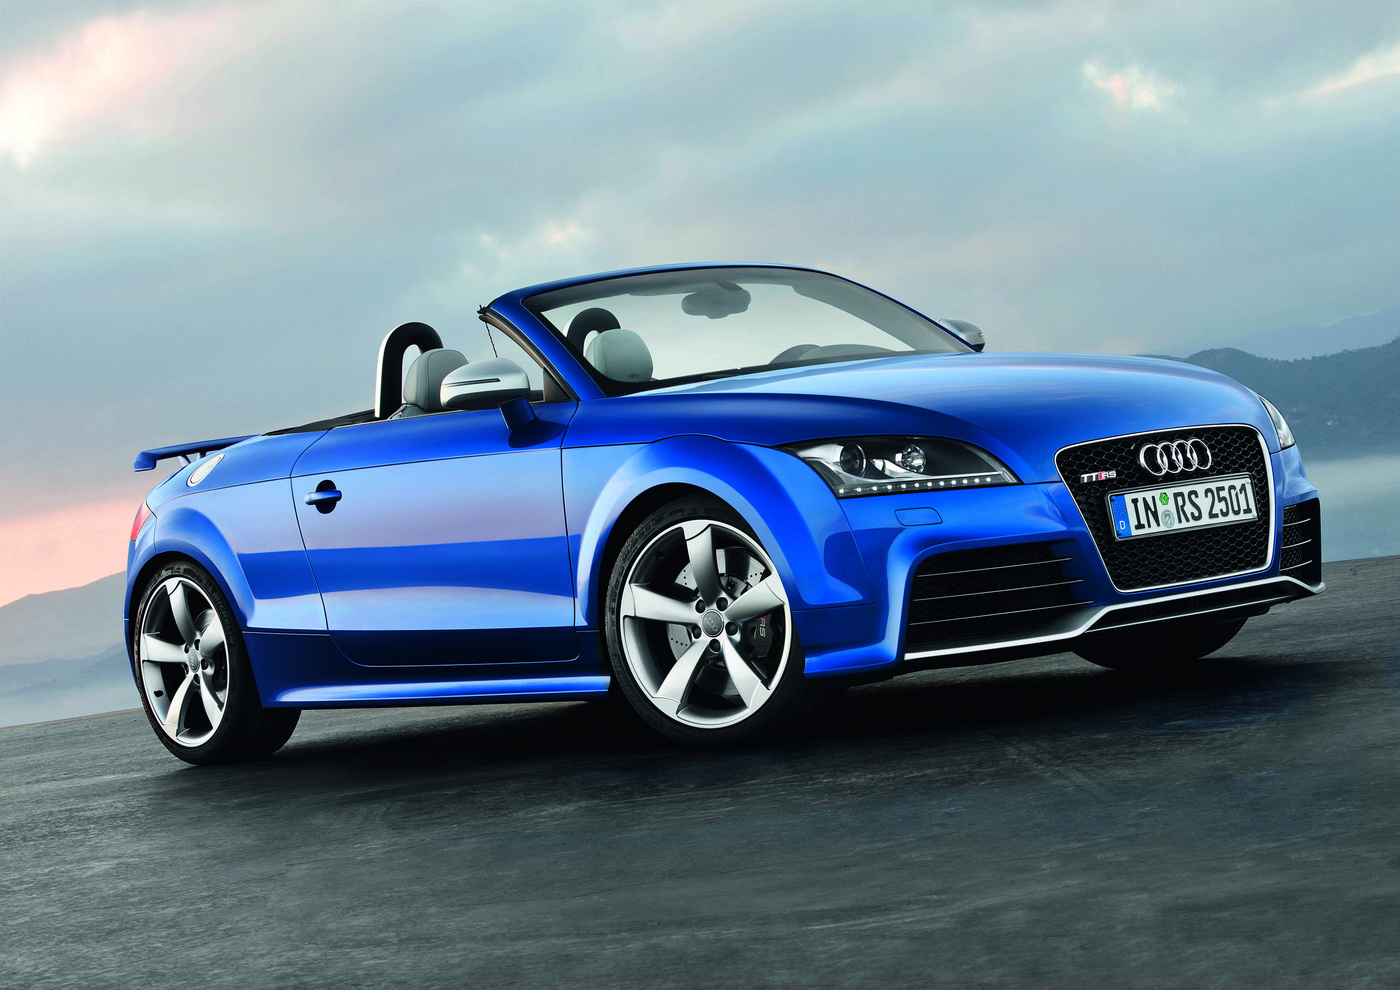 Captivating Audi Sports Car Convertible